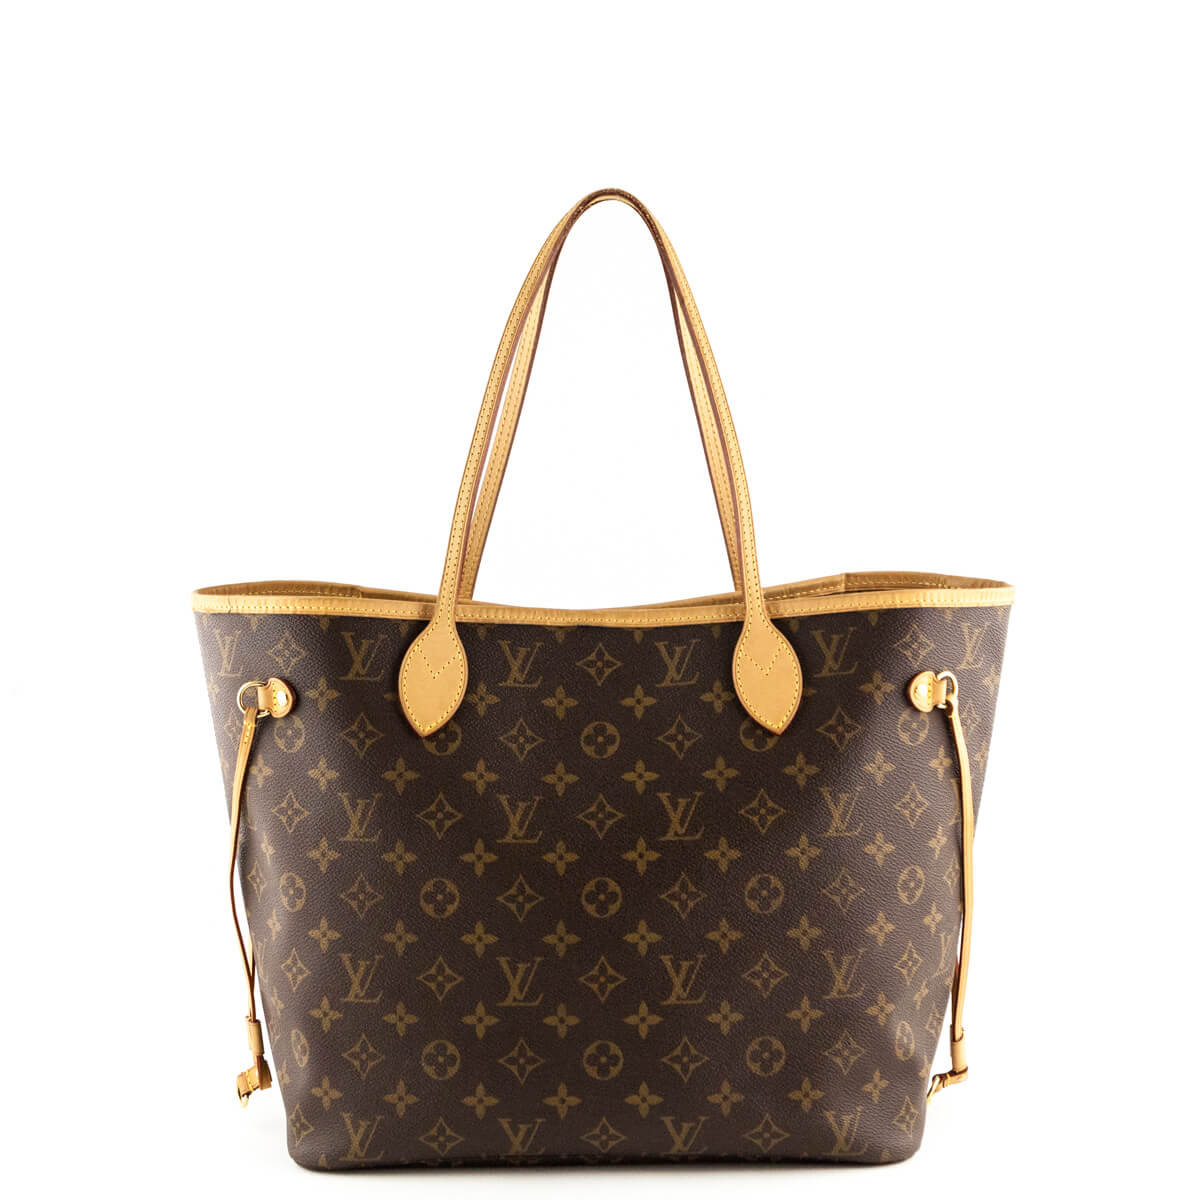 Sac Louis Vuitton Neverfull Mm : Louis vuitton monogram neverfull mm tote lv